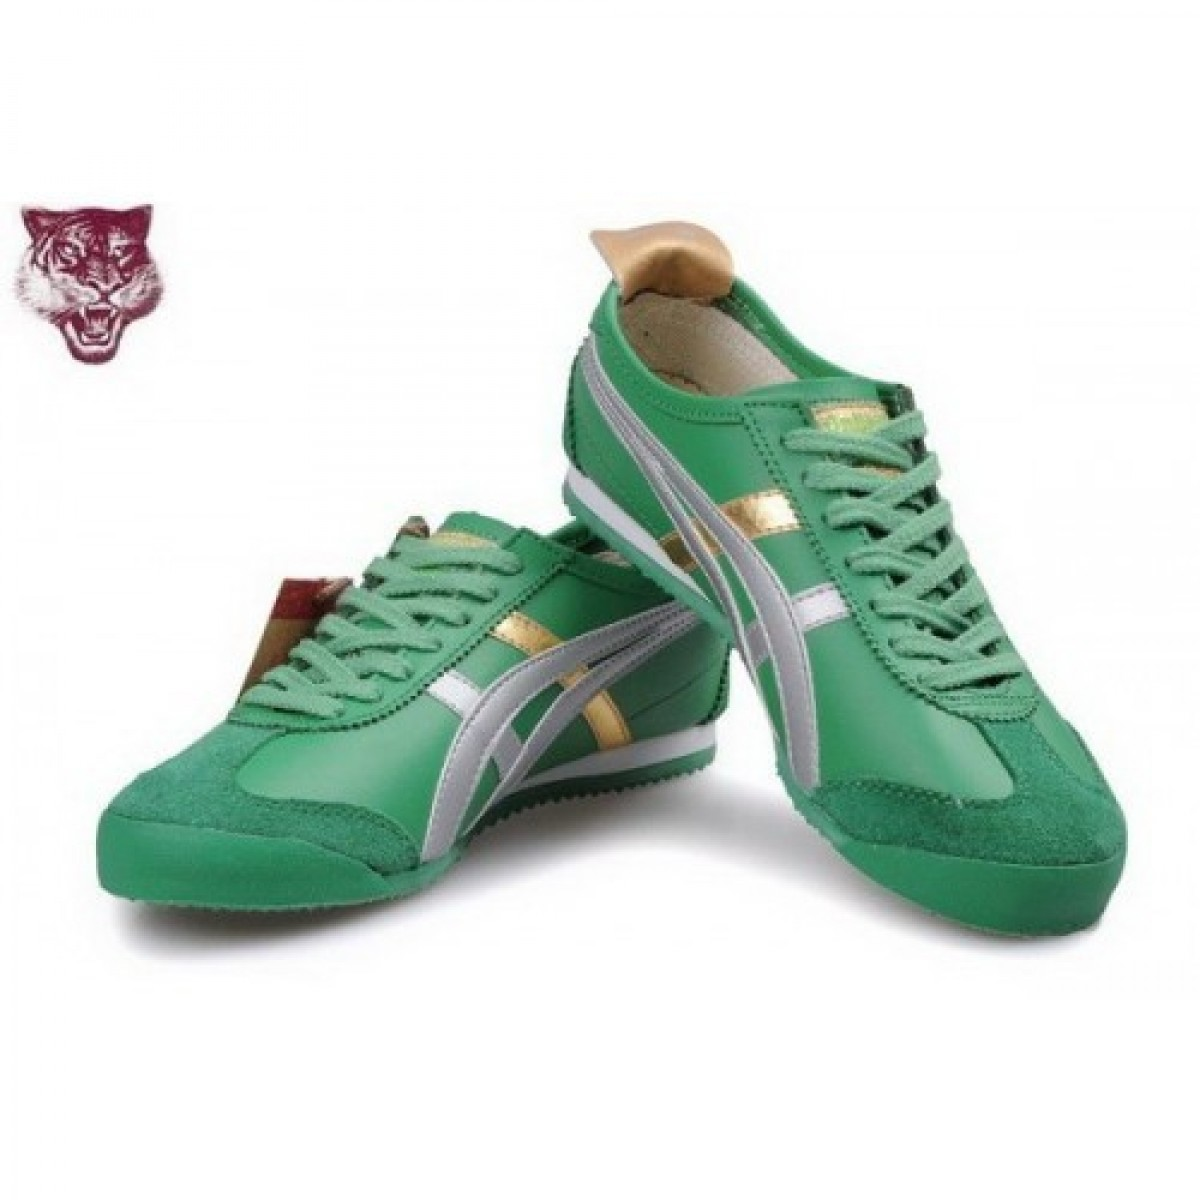 AA9760 Soldes Asics Tiger Kanuchi Chaussures Vert Or Argent 91854704 Pas Cher